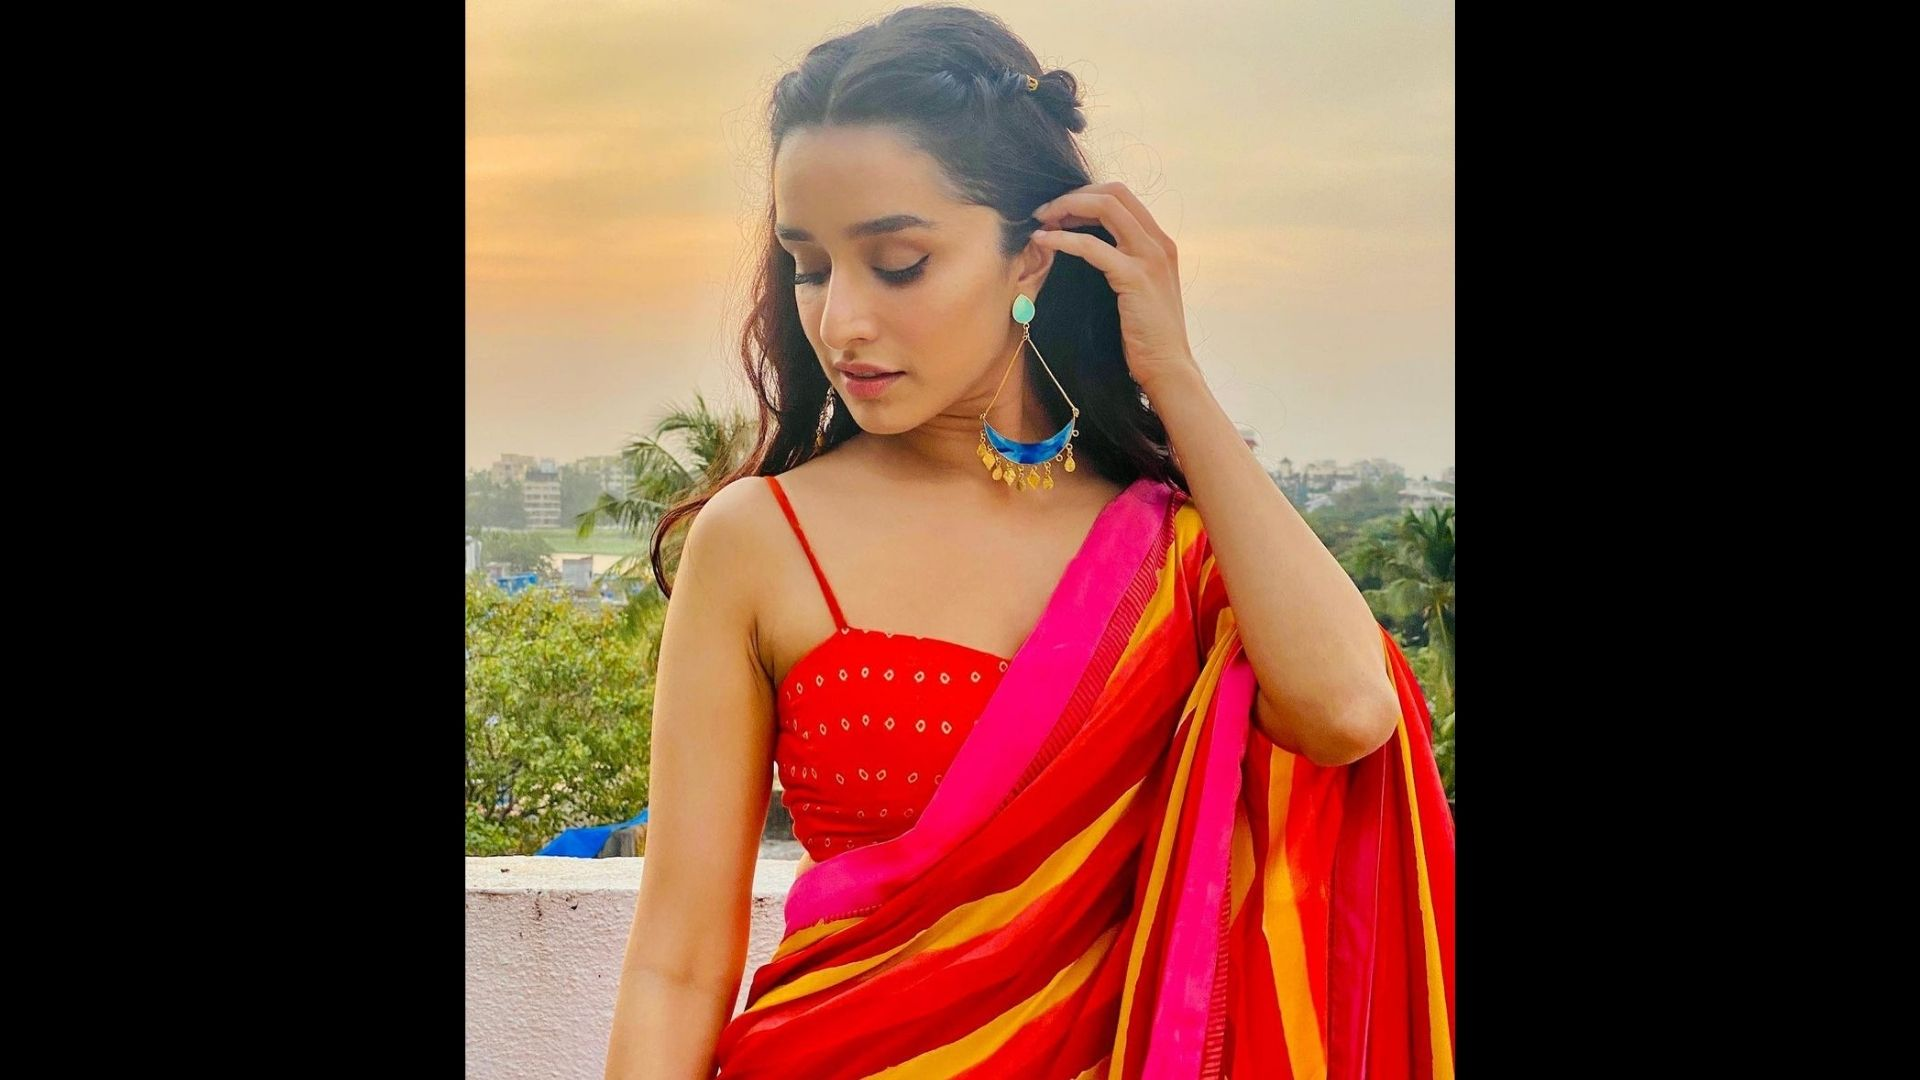 Shraddha Kapoor's Sunset Hued Saree Will Make You Want To Ditch Your Karwa Chauth Outfit For This One – Yay Or Nay?